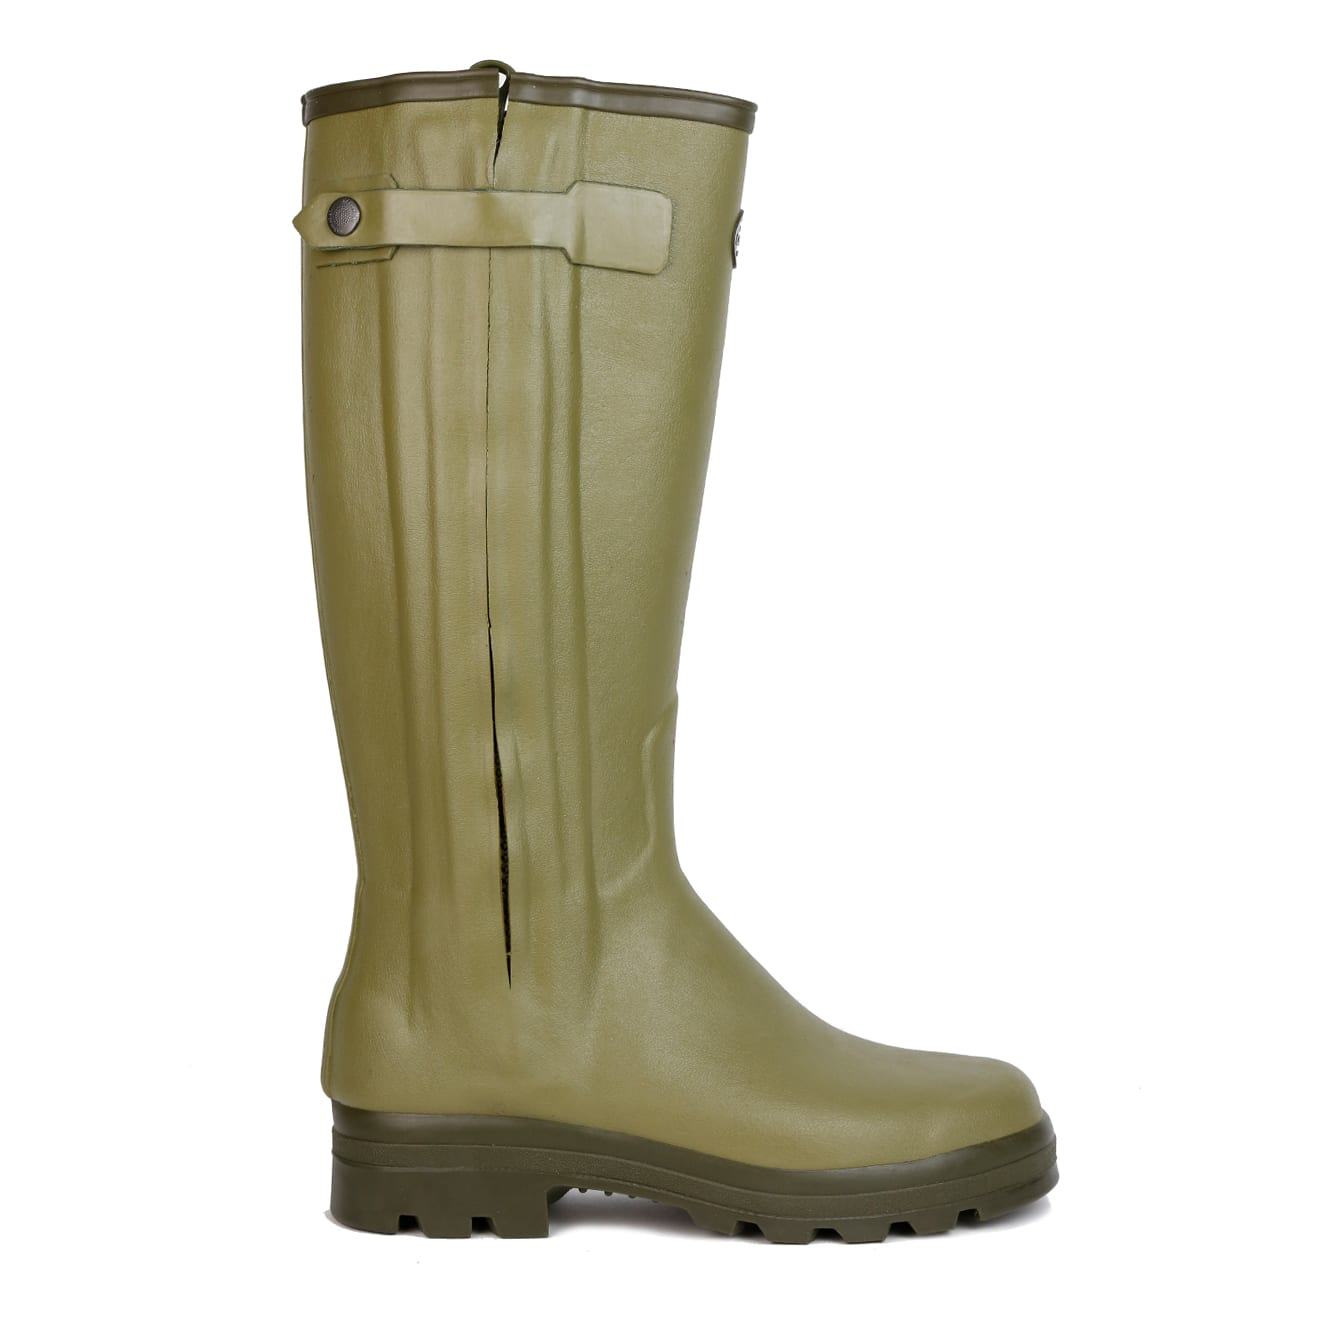 Le Chameau Chasseur Cuir Wellington Boot The Sporting Lodge